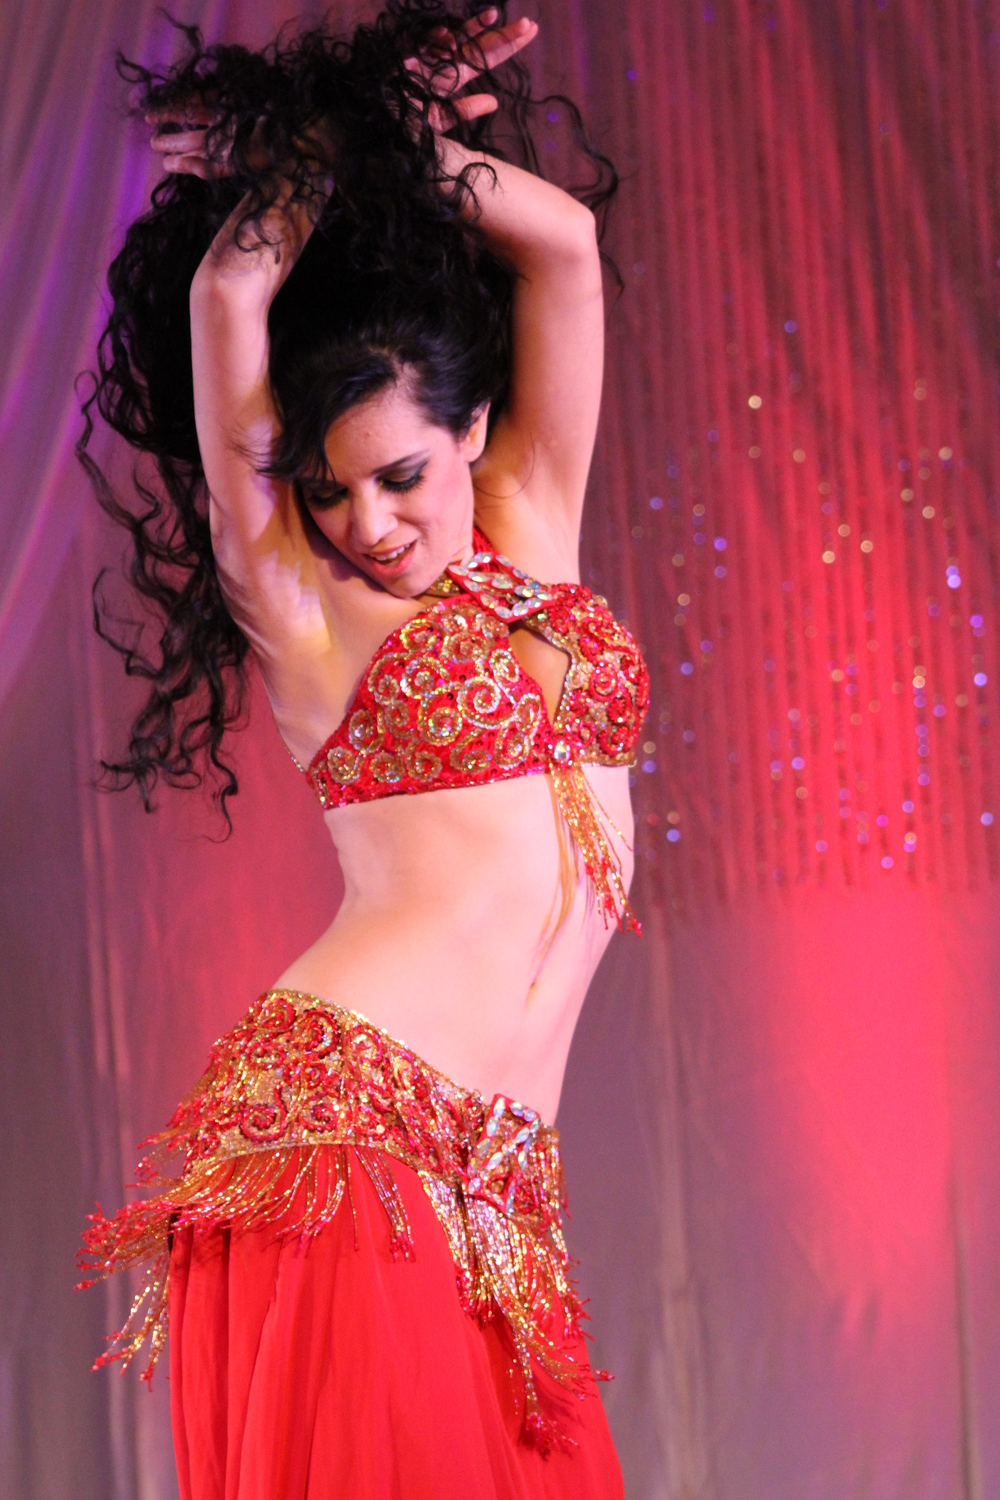 Red Buckle Bella Miami Florida Belly dancer